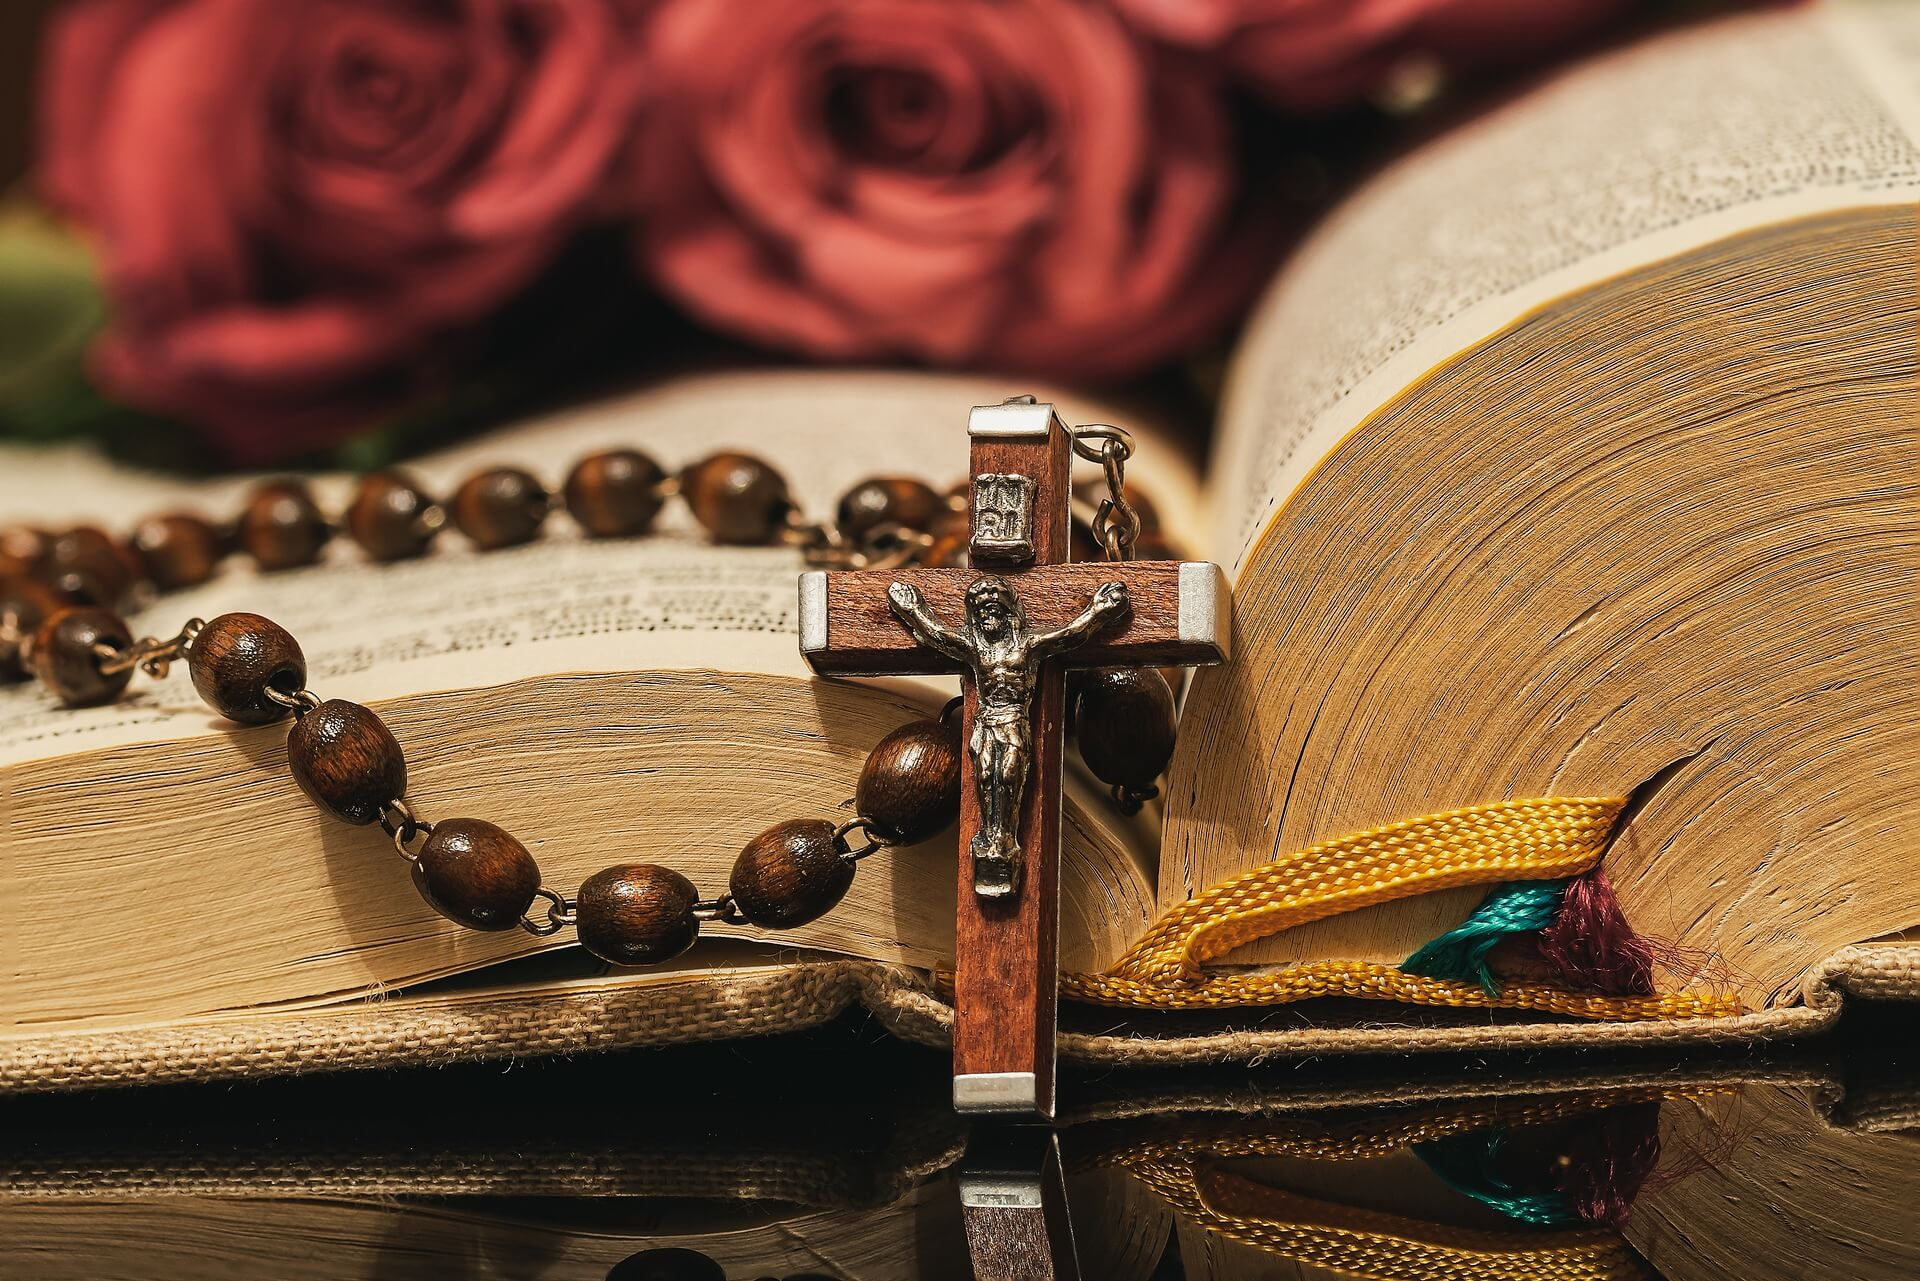 The Bible and rosary